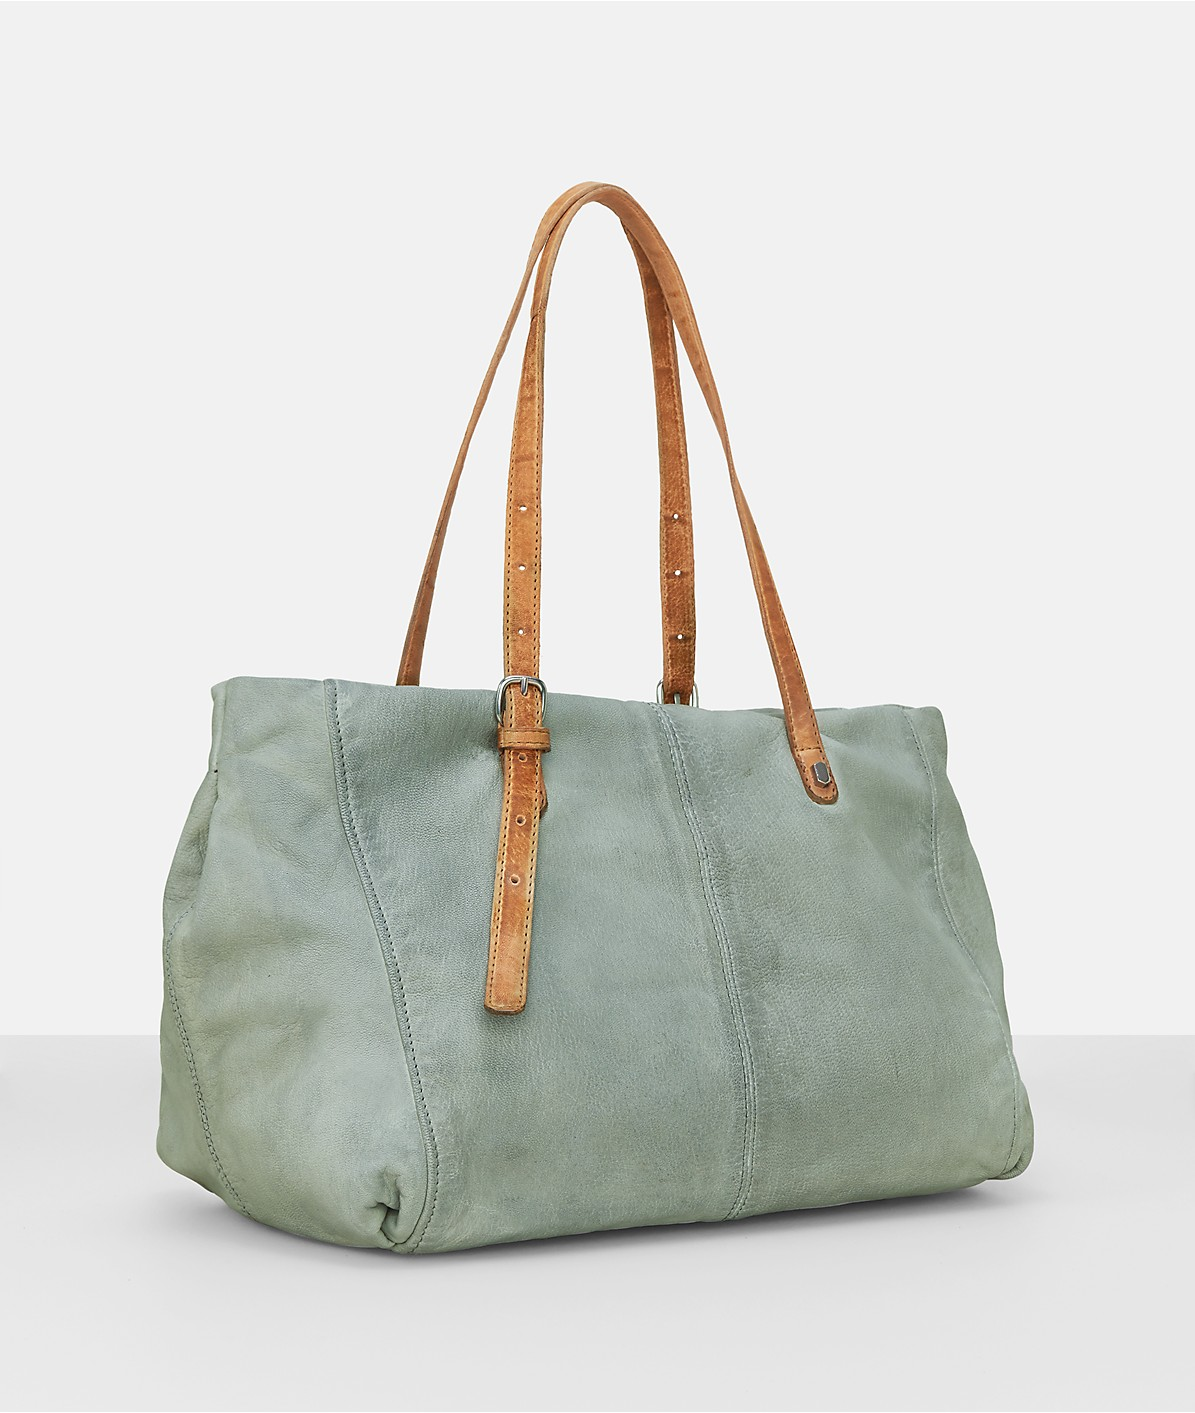 Doba handbag from liebeskind